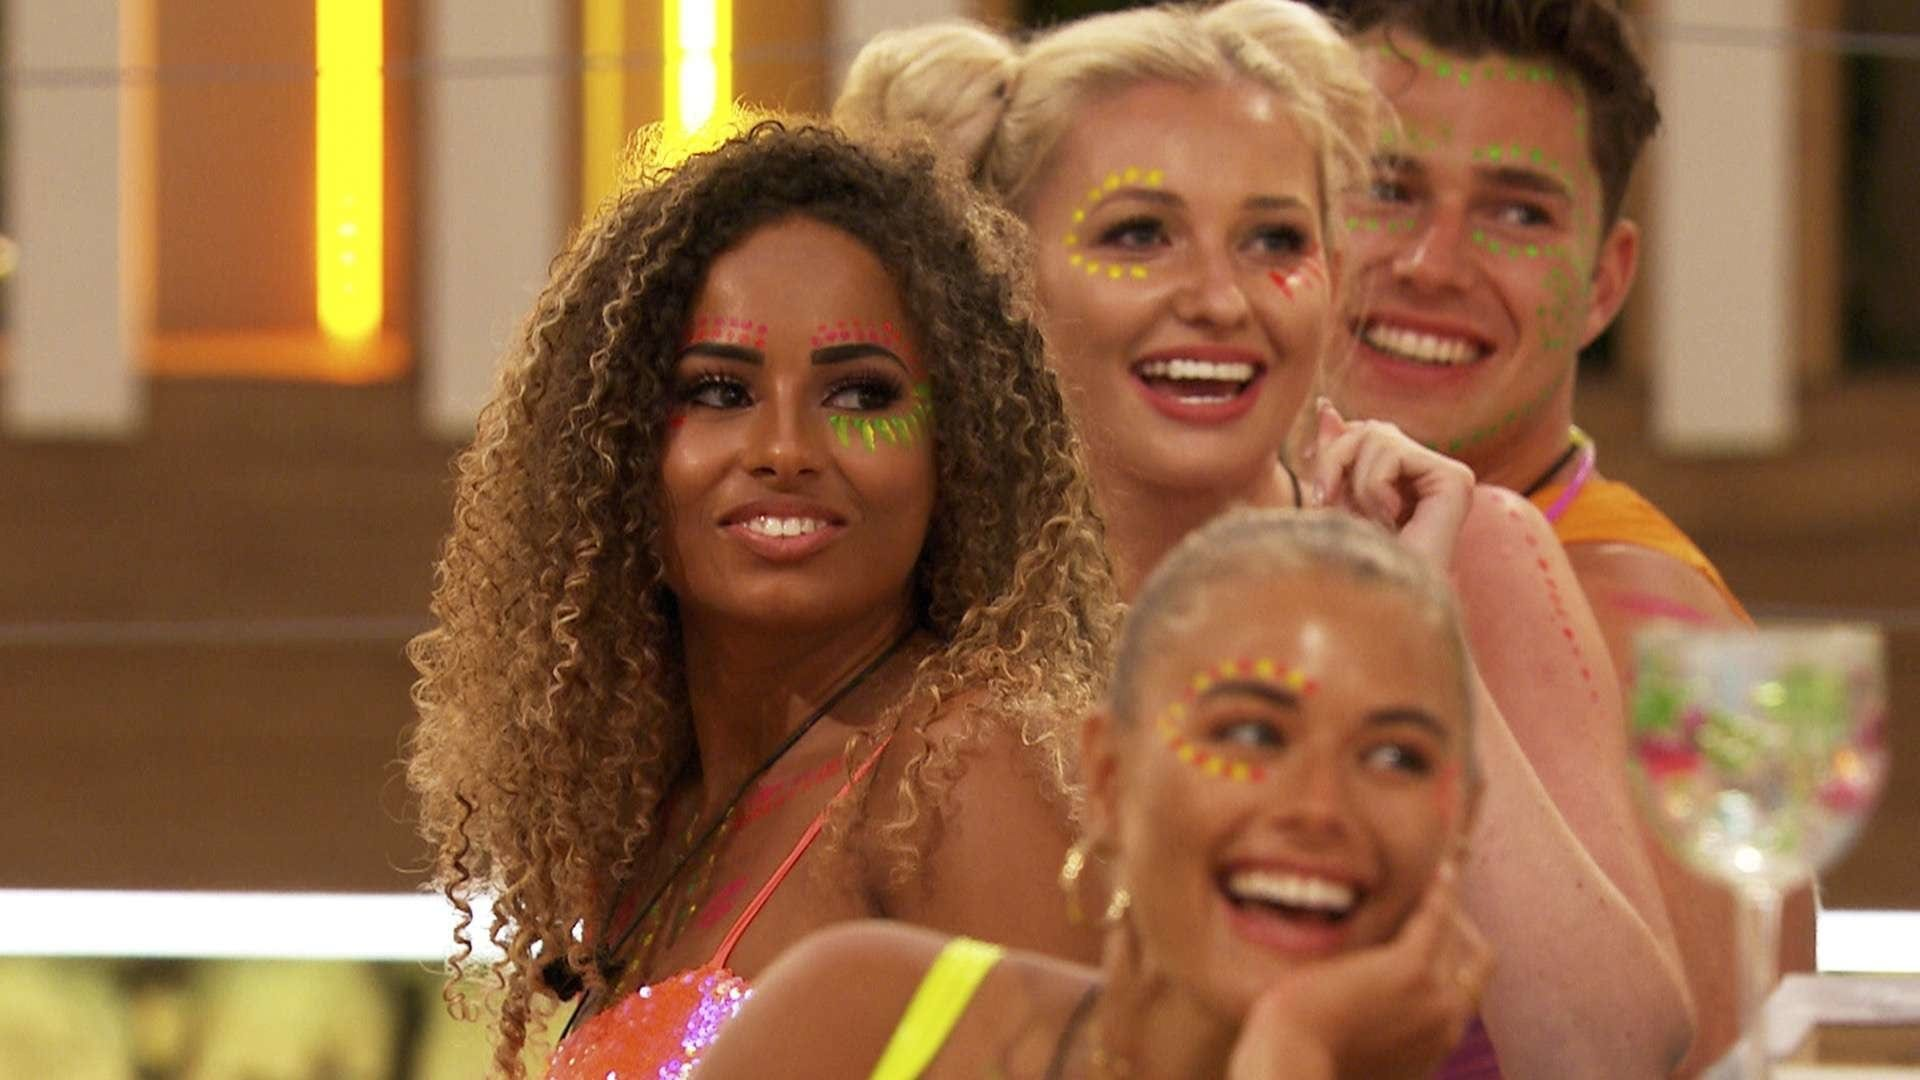 Love Island Season 5 Episode 29: 'Episode 24' Streaming For The UK and The  US Viewers - Otakukart News